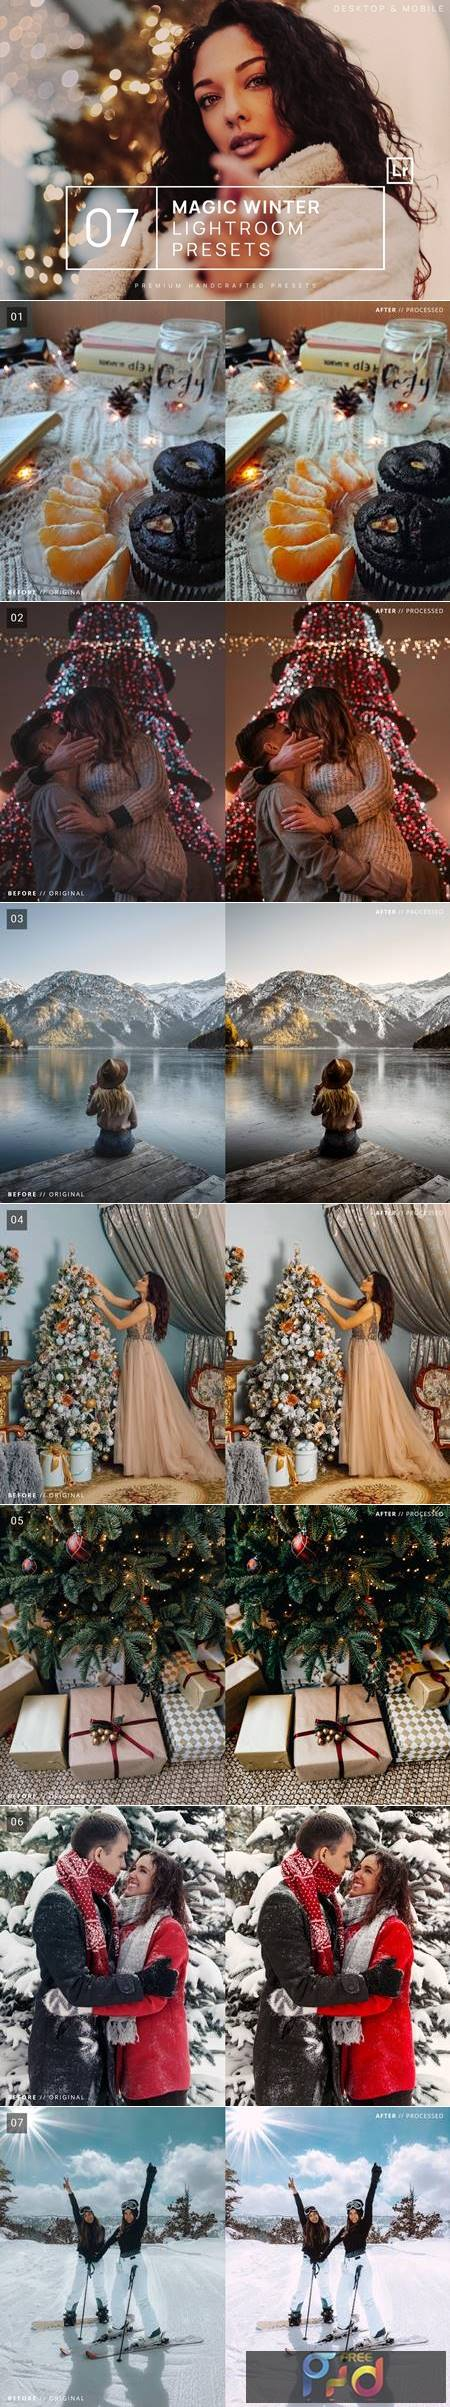 7 Magic Winter Lightroom Presets + Mobile DEMZJRT 1